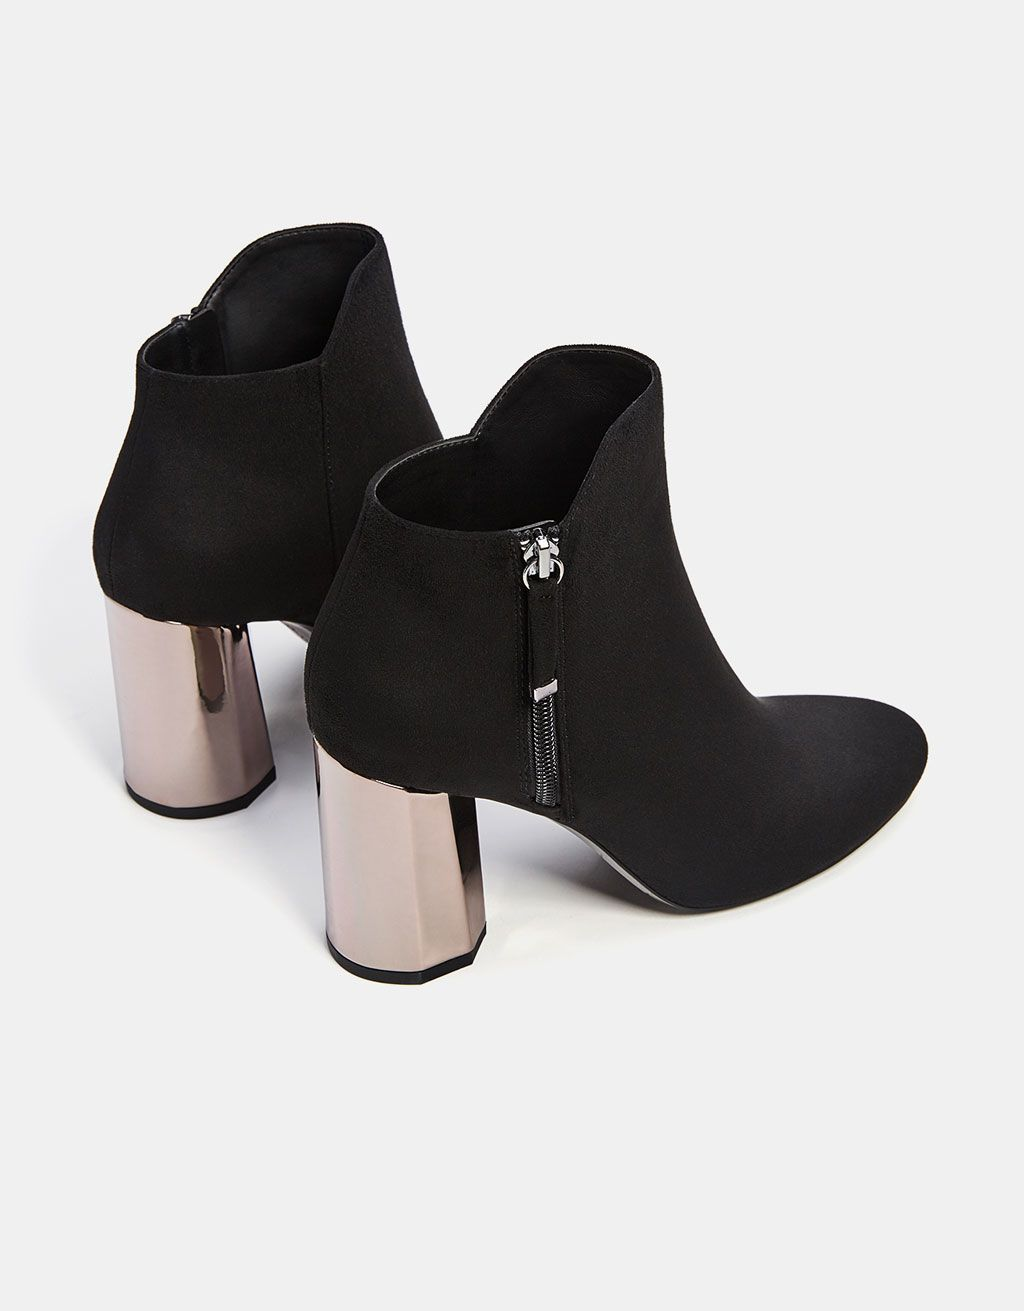 384dbe5839d High heel metallic ankle boots. Discover this and many more items in  Bershka with new products every week